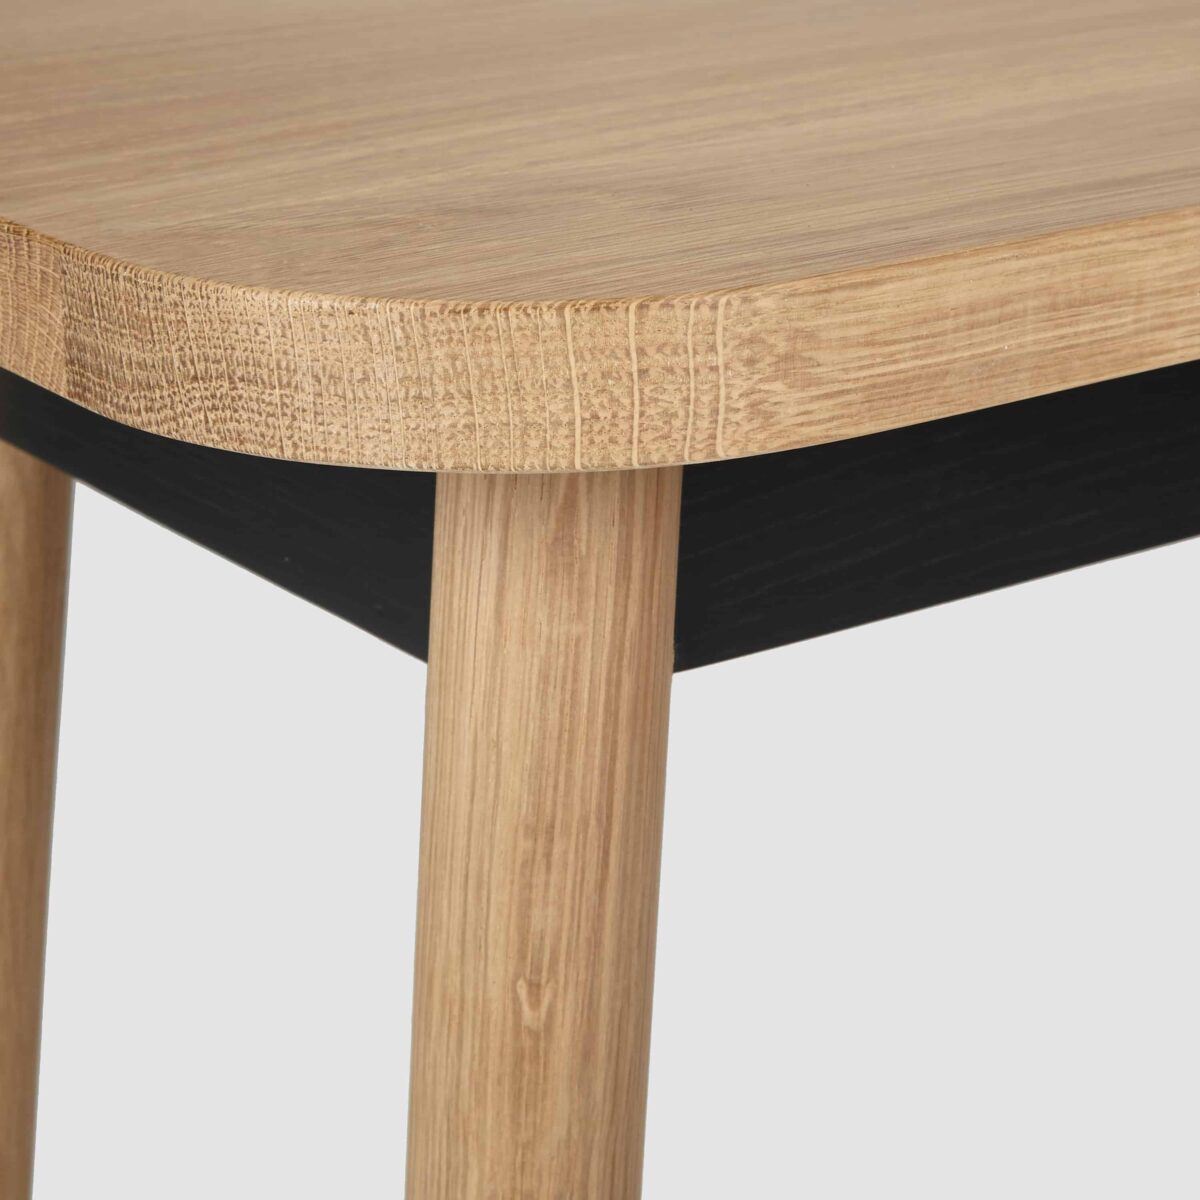 semley-bench-large-oak-another-country-004